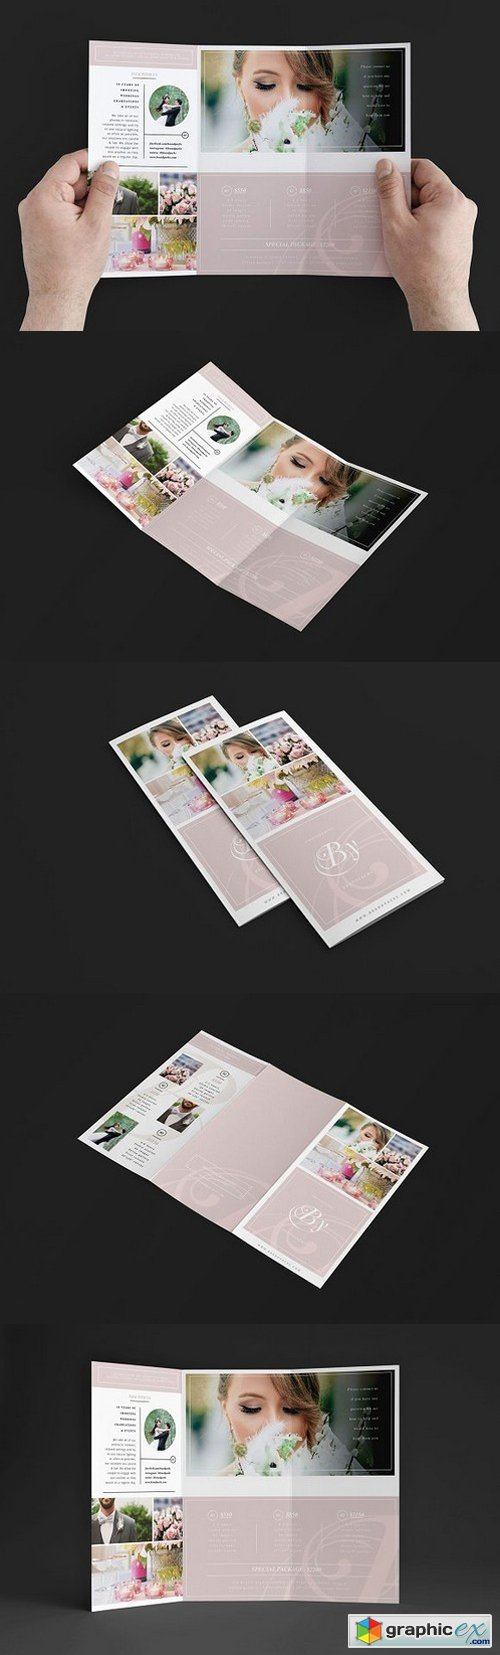 Wedding Photography Trifold Brochure 1346168